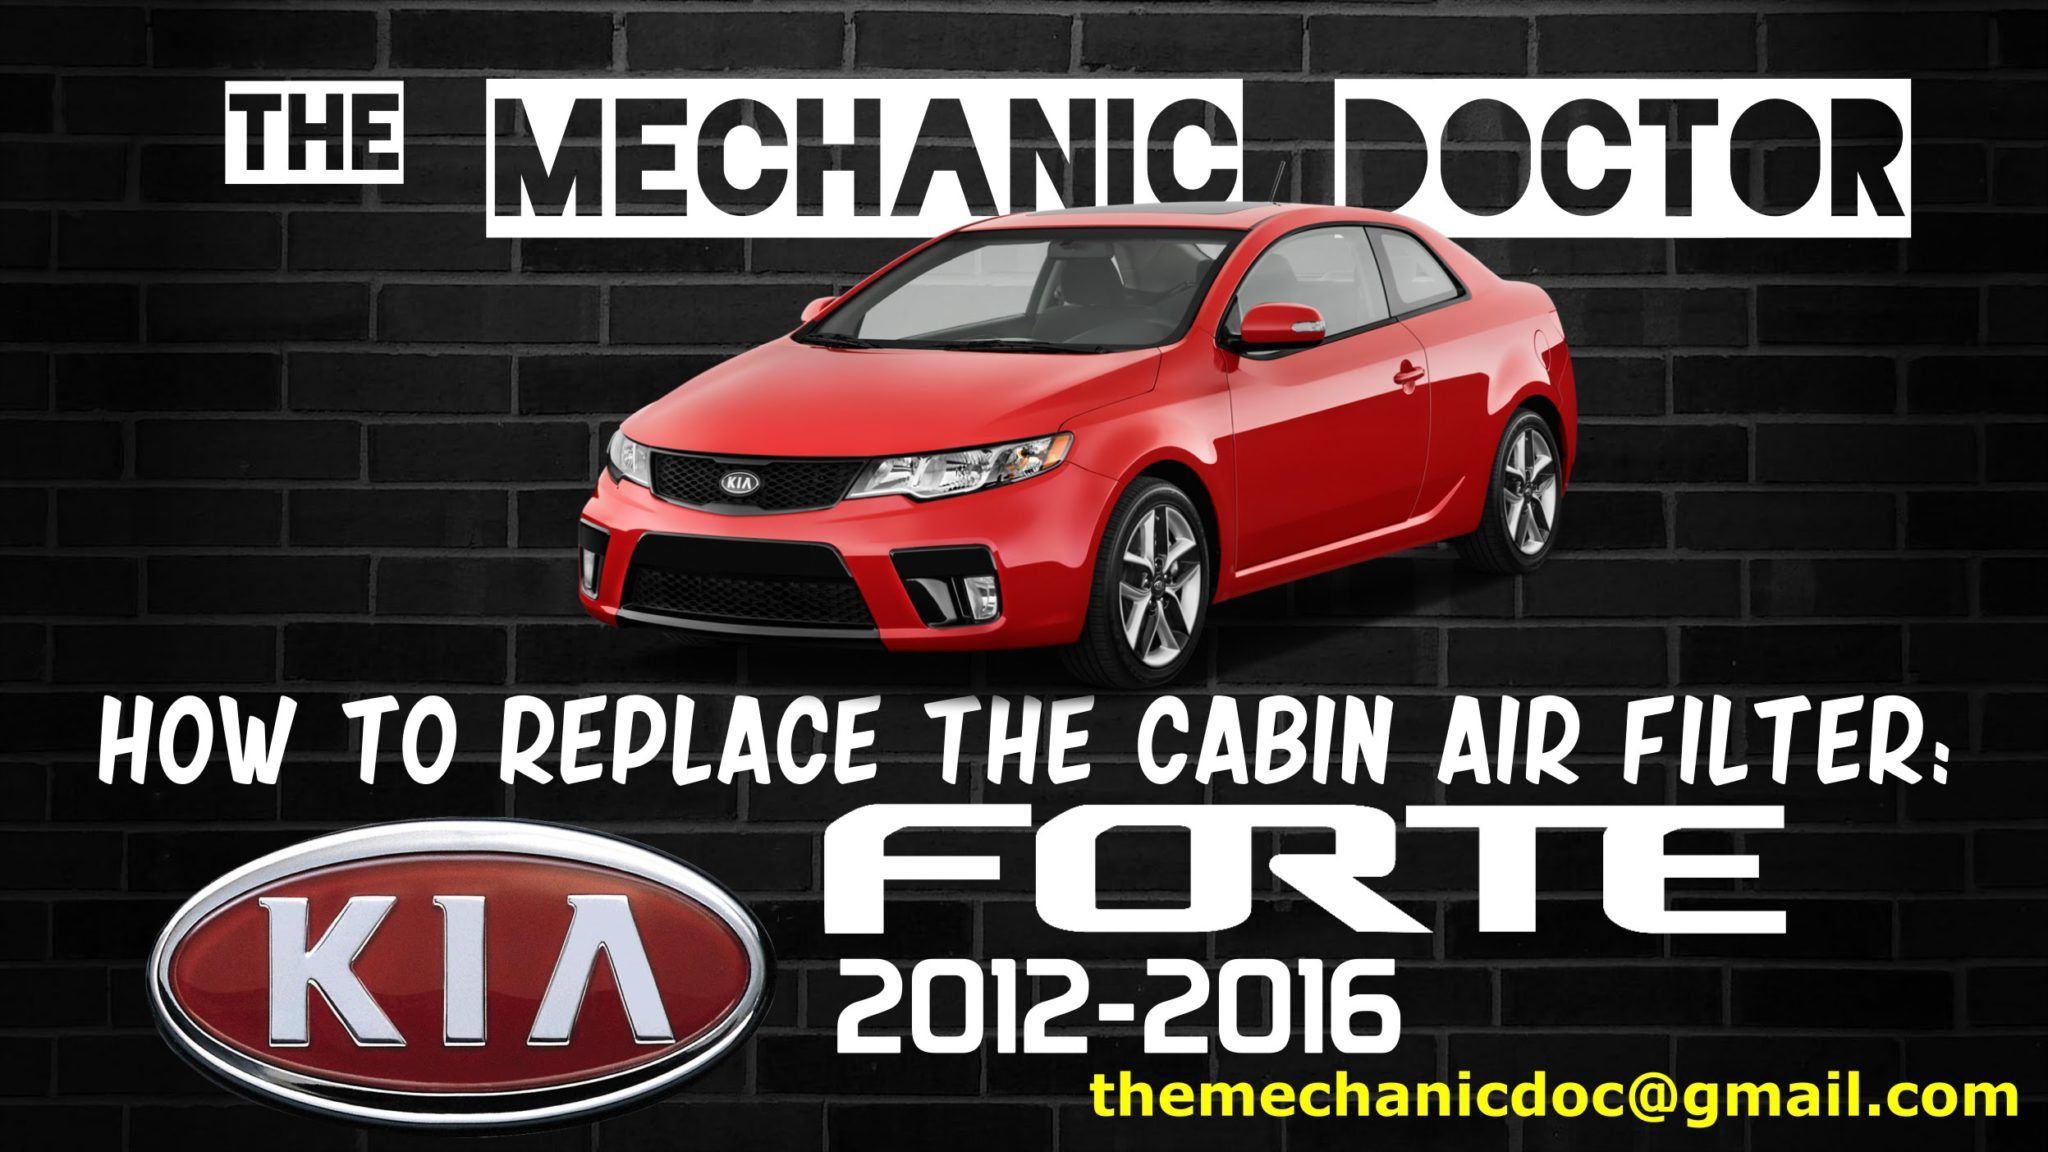 This Video Will Show You Step By Step Instructions On How To Replace The Cabin Air Filter On A Kia Forte 2012 2016 Cabin Air Filter Kia Forte Cabin